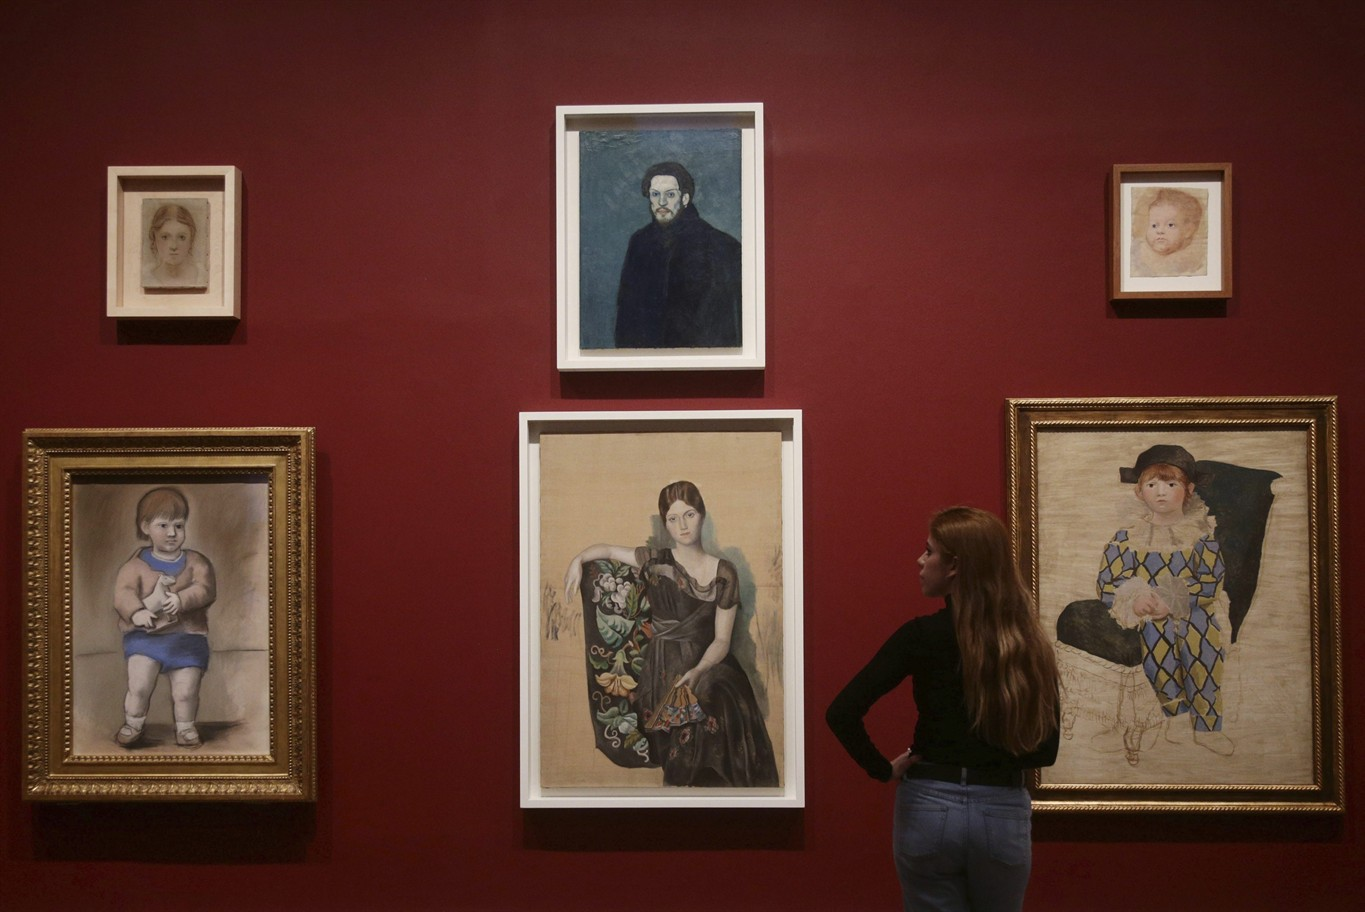 tate modern picasso show charts one extraordinary year 1932 news 1130. Black Bedroom Furniture Sets. Home Design Ideas